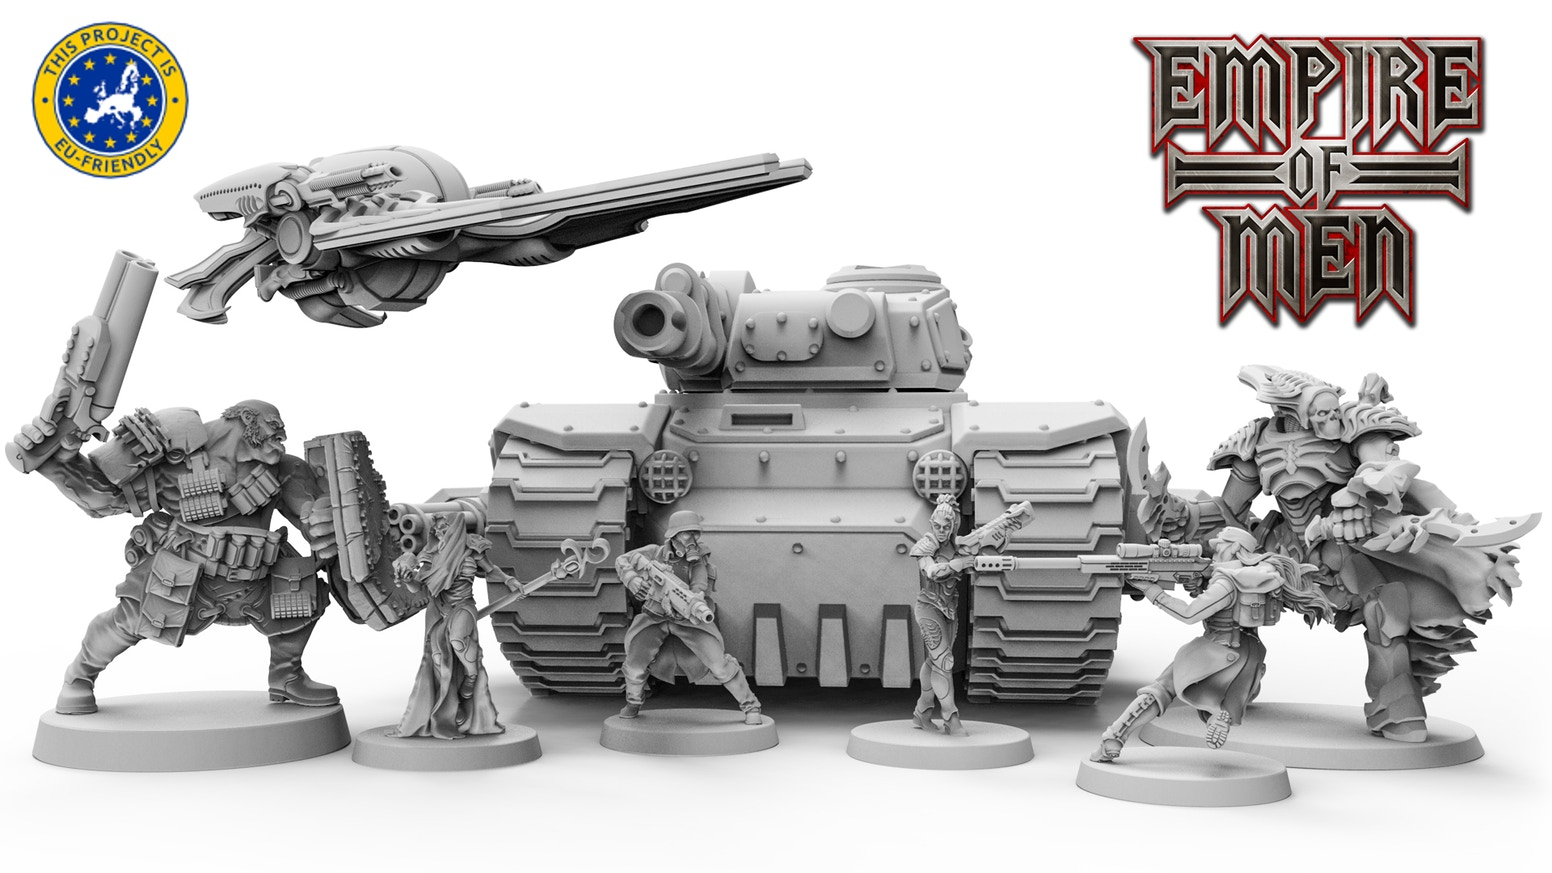 Astonishing miniature line of sci-fi armies of dark future. Perfect for your favorite tabletop game, collection or painting.